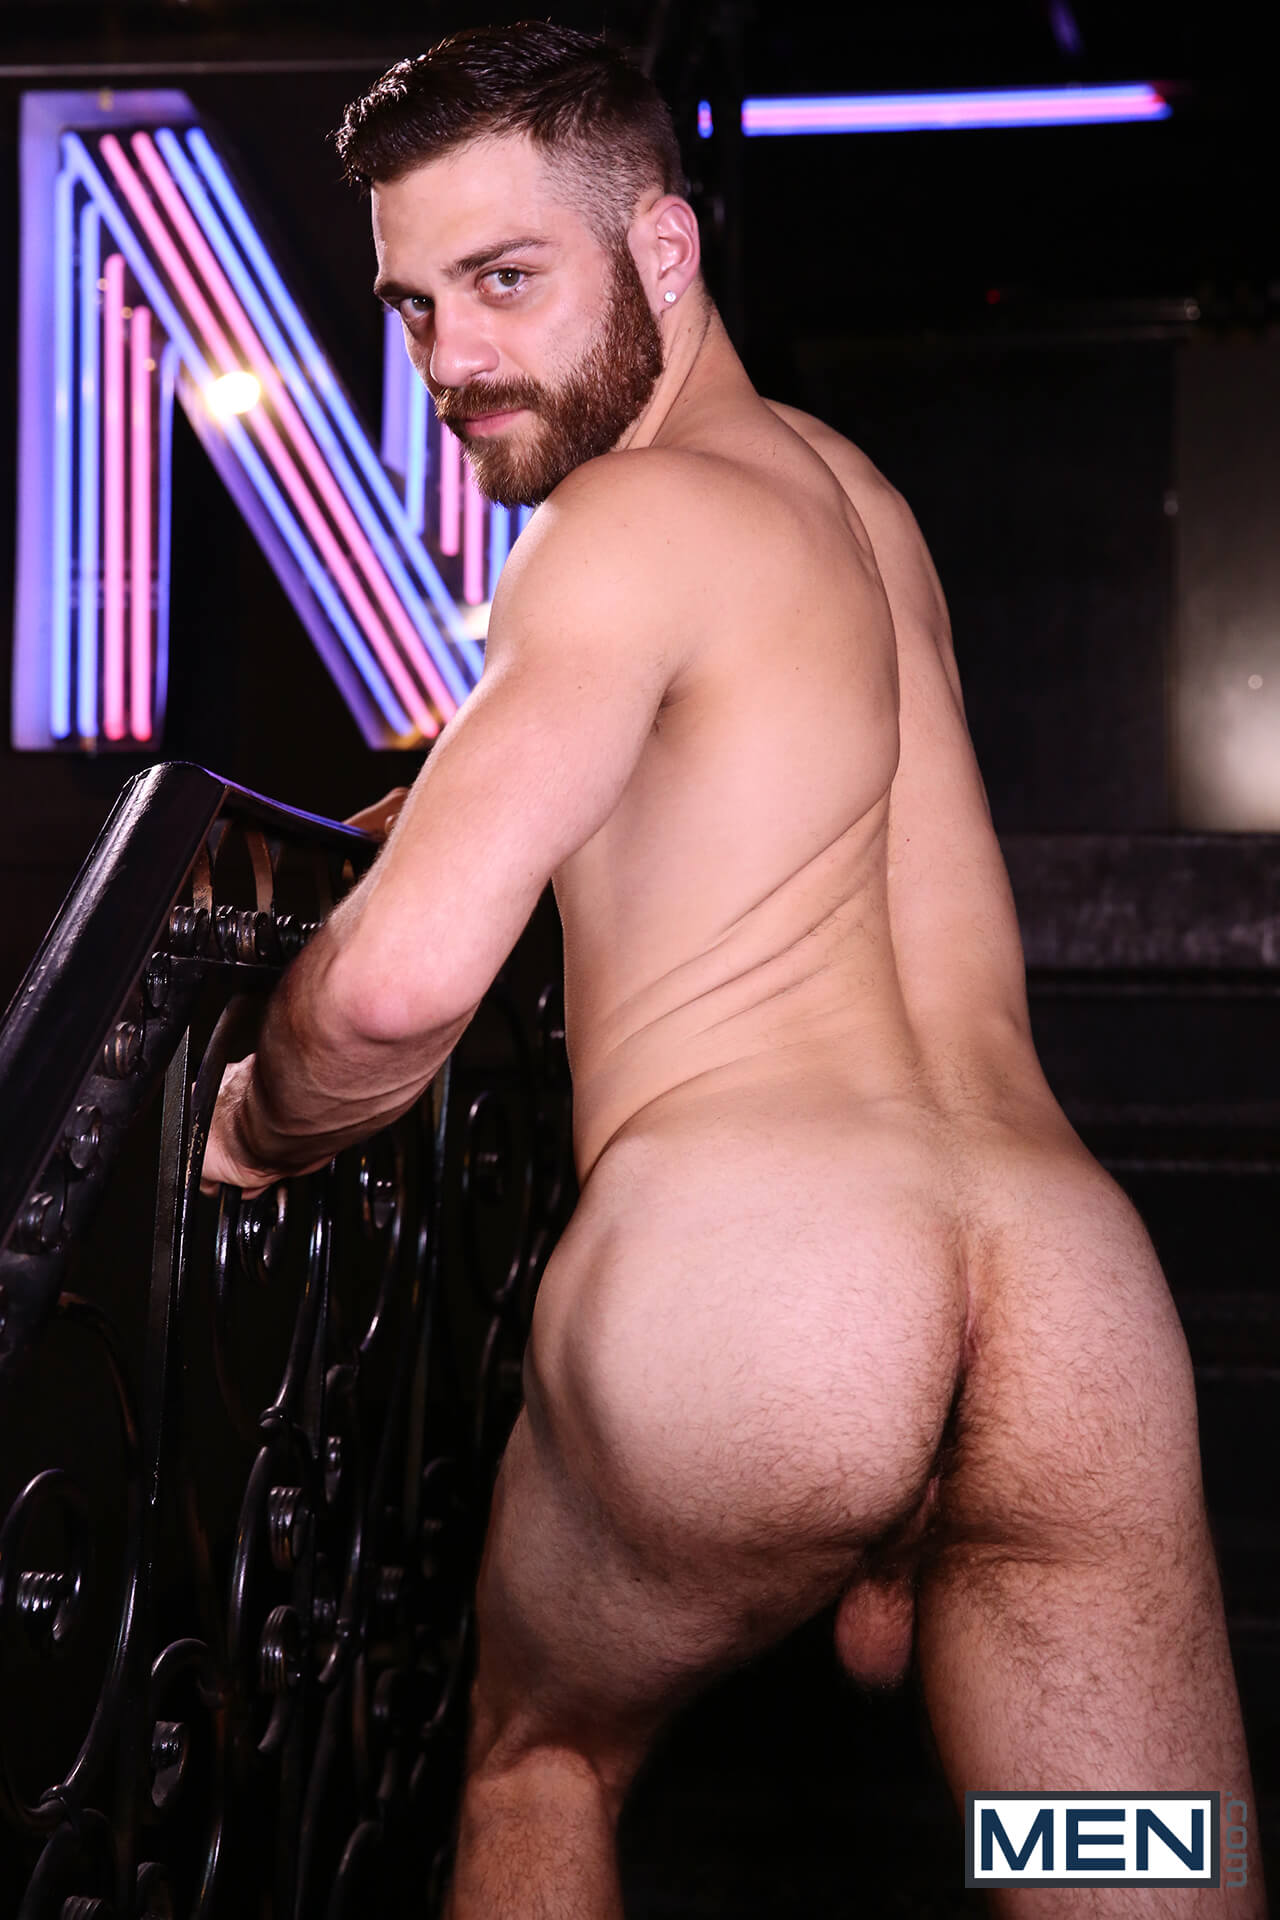 men drill my hole love gun part 2 adam bryant tommy defendi gay porn blog image 3